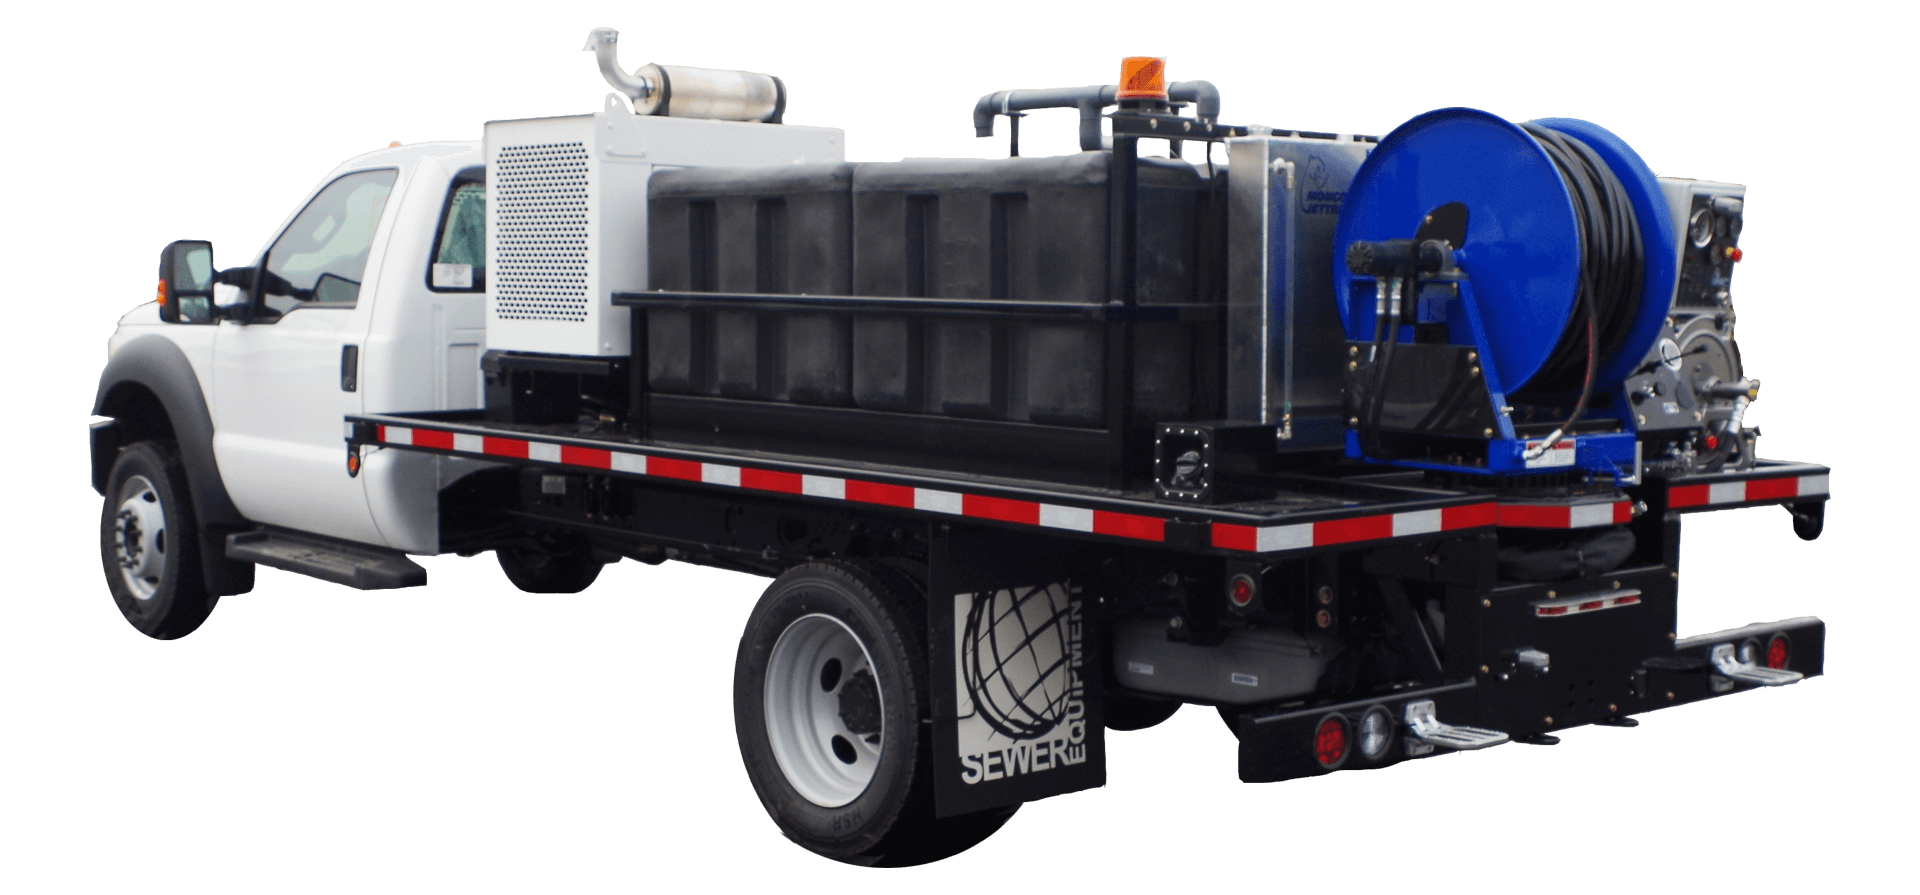 Mongoose Jetters, Model 402, Jetter Truck